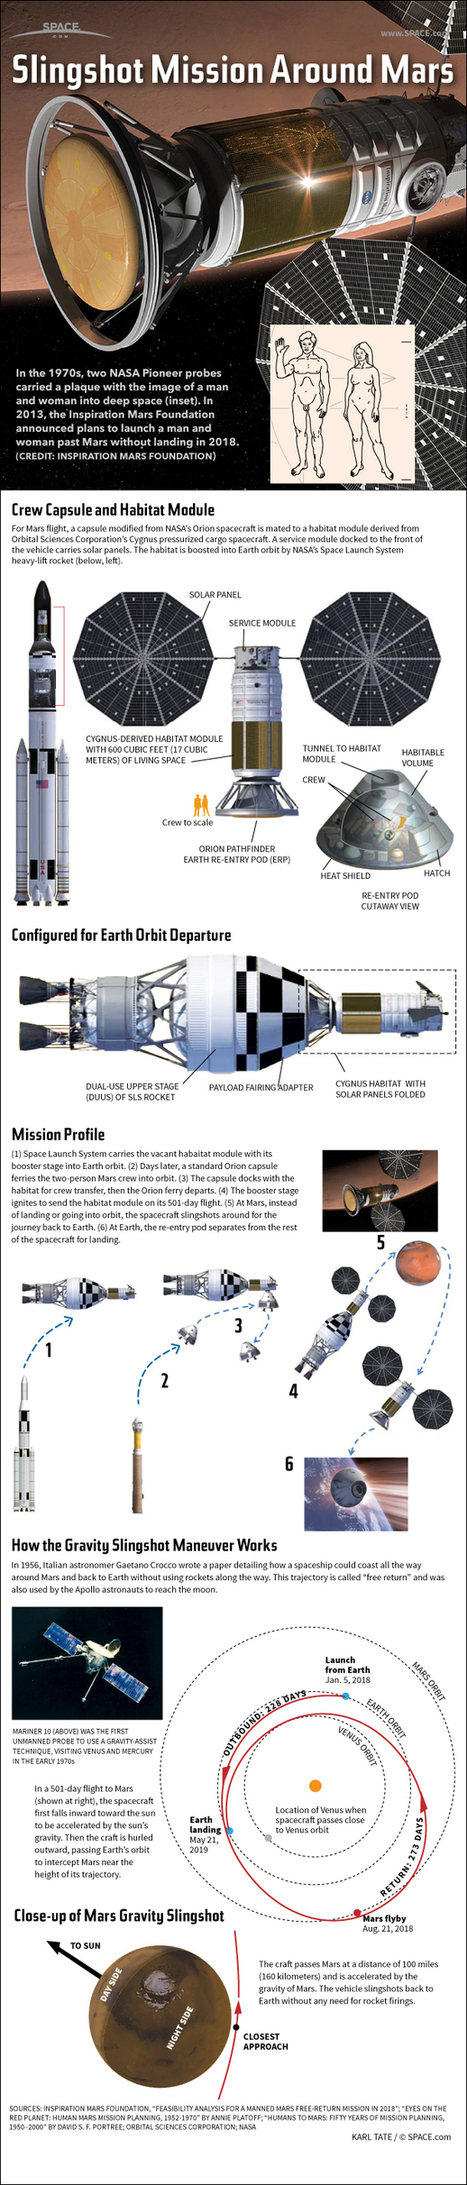 Dennis Tito's 2021 Human Mars Flyby Mission Explained (Infographic) | Holotúria | Scoop.it